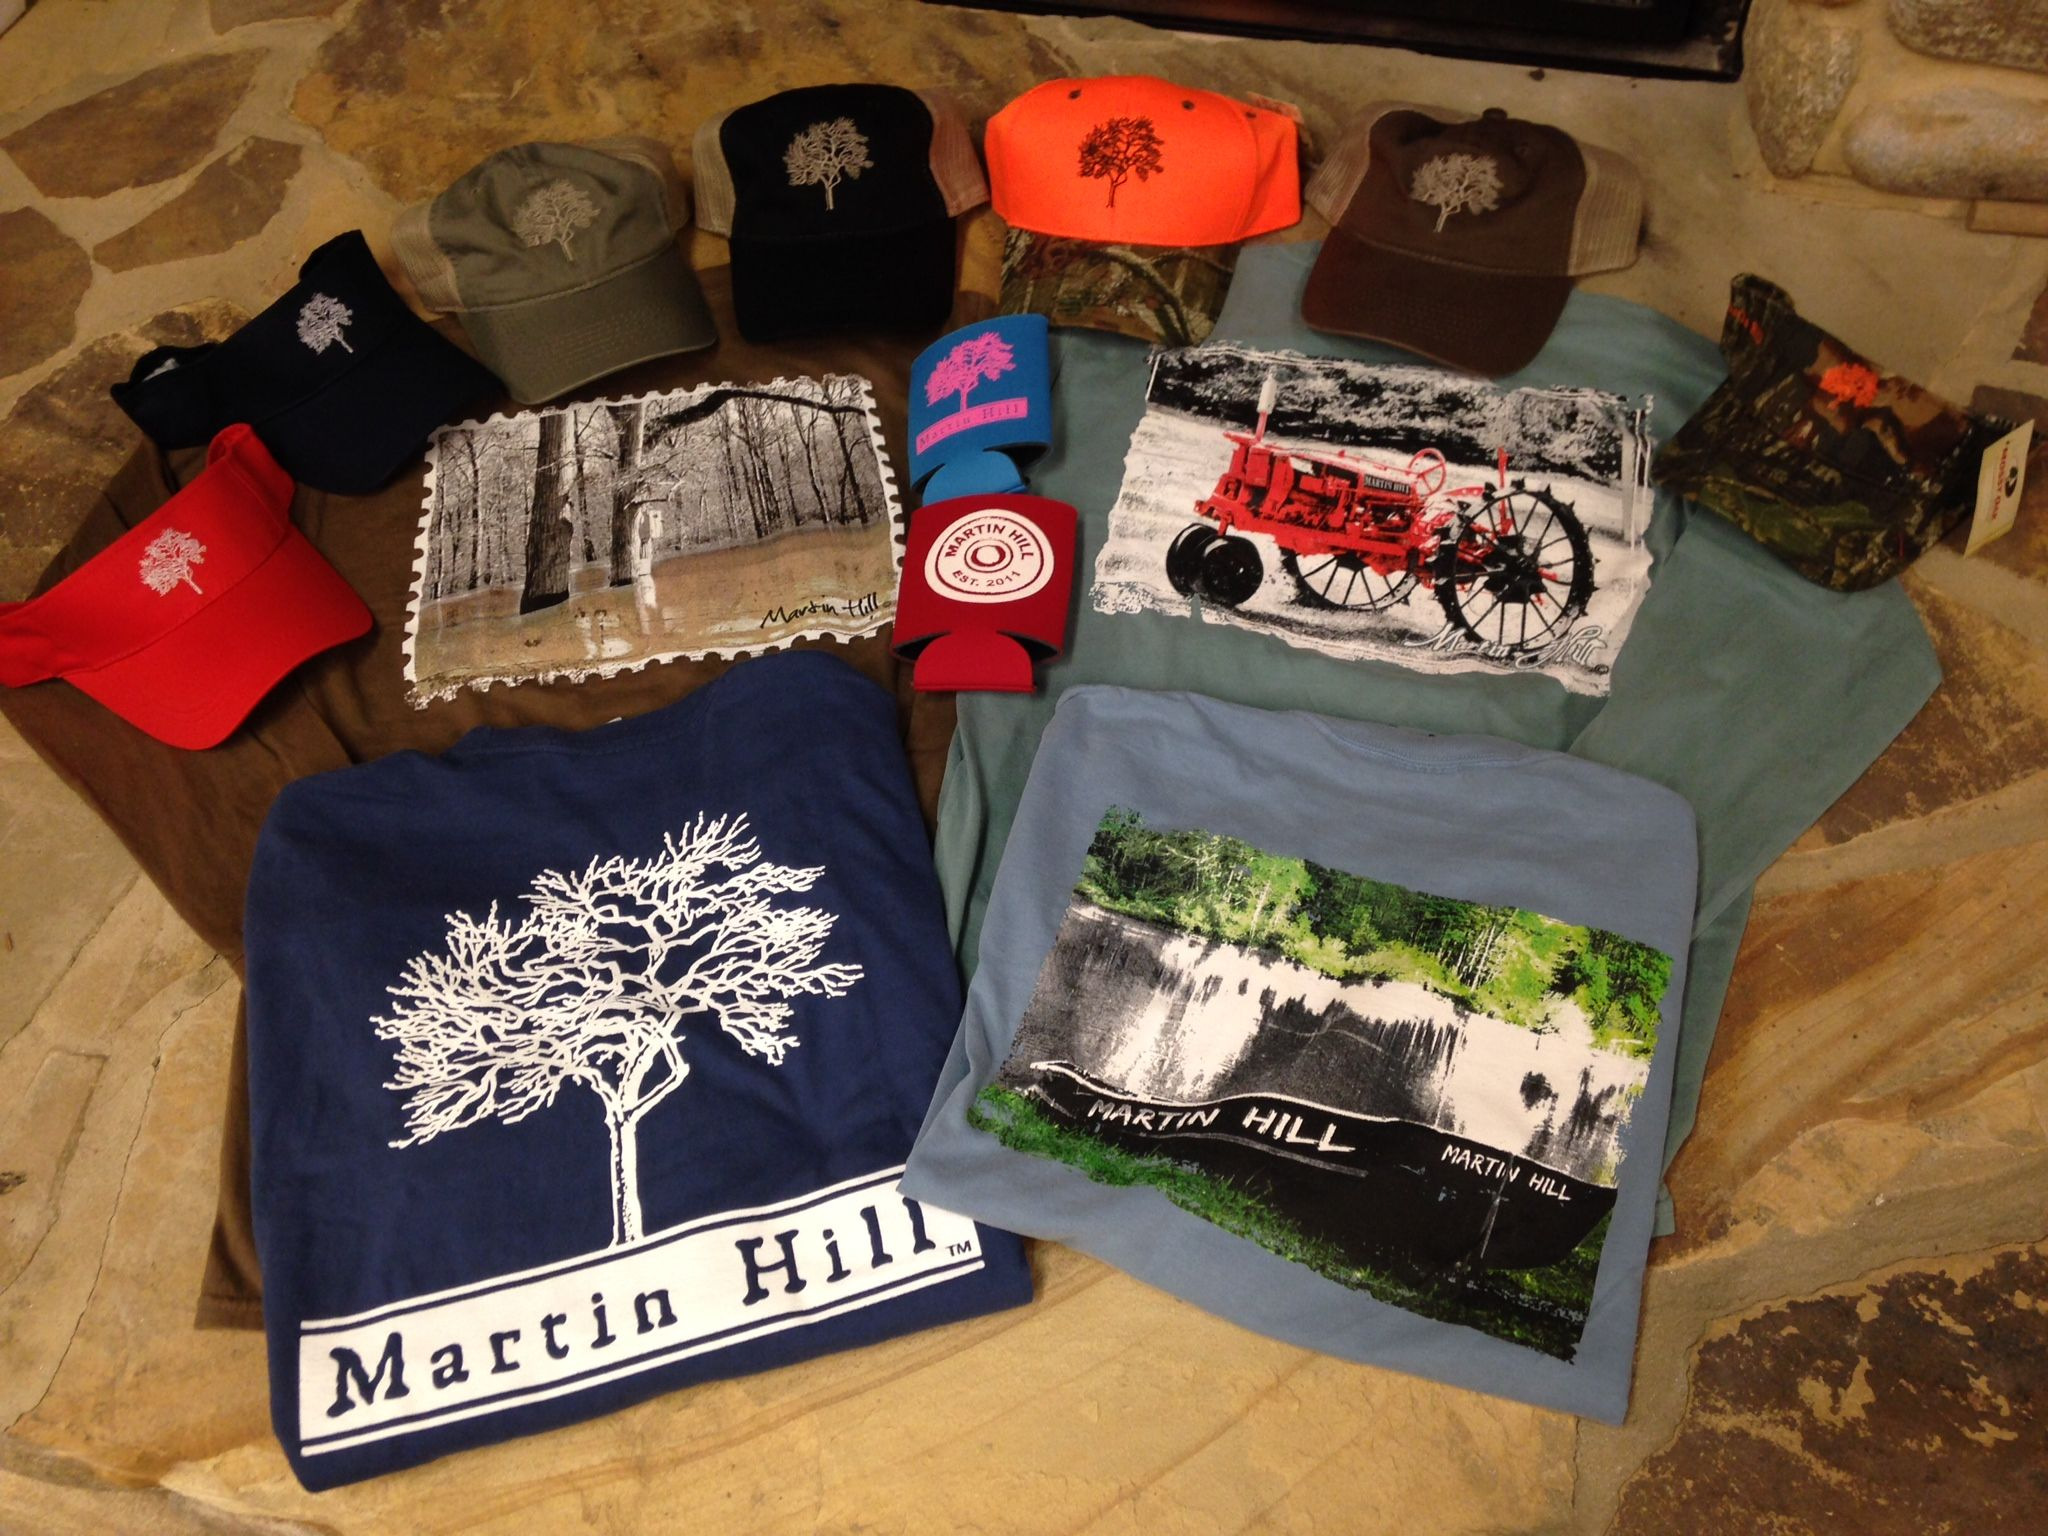 Brannen Outers Carries A Full Line Of Martin Hill Outdoor Wear Https